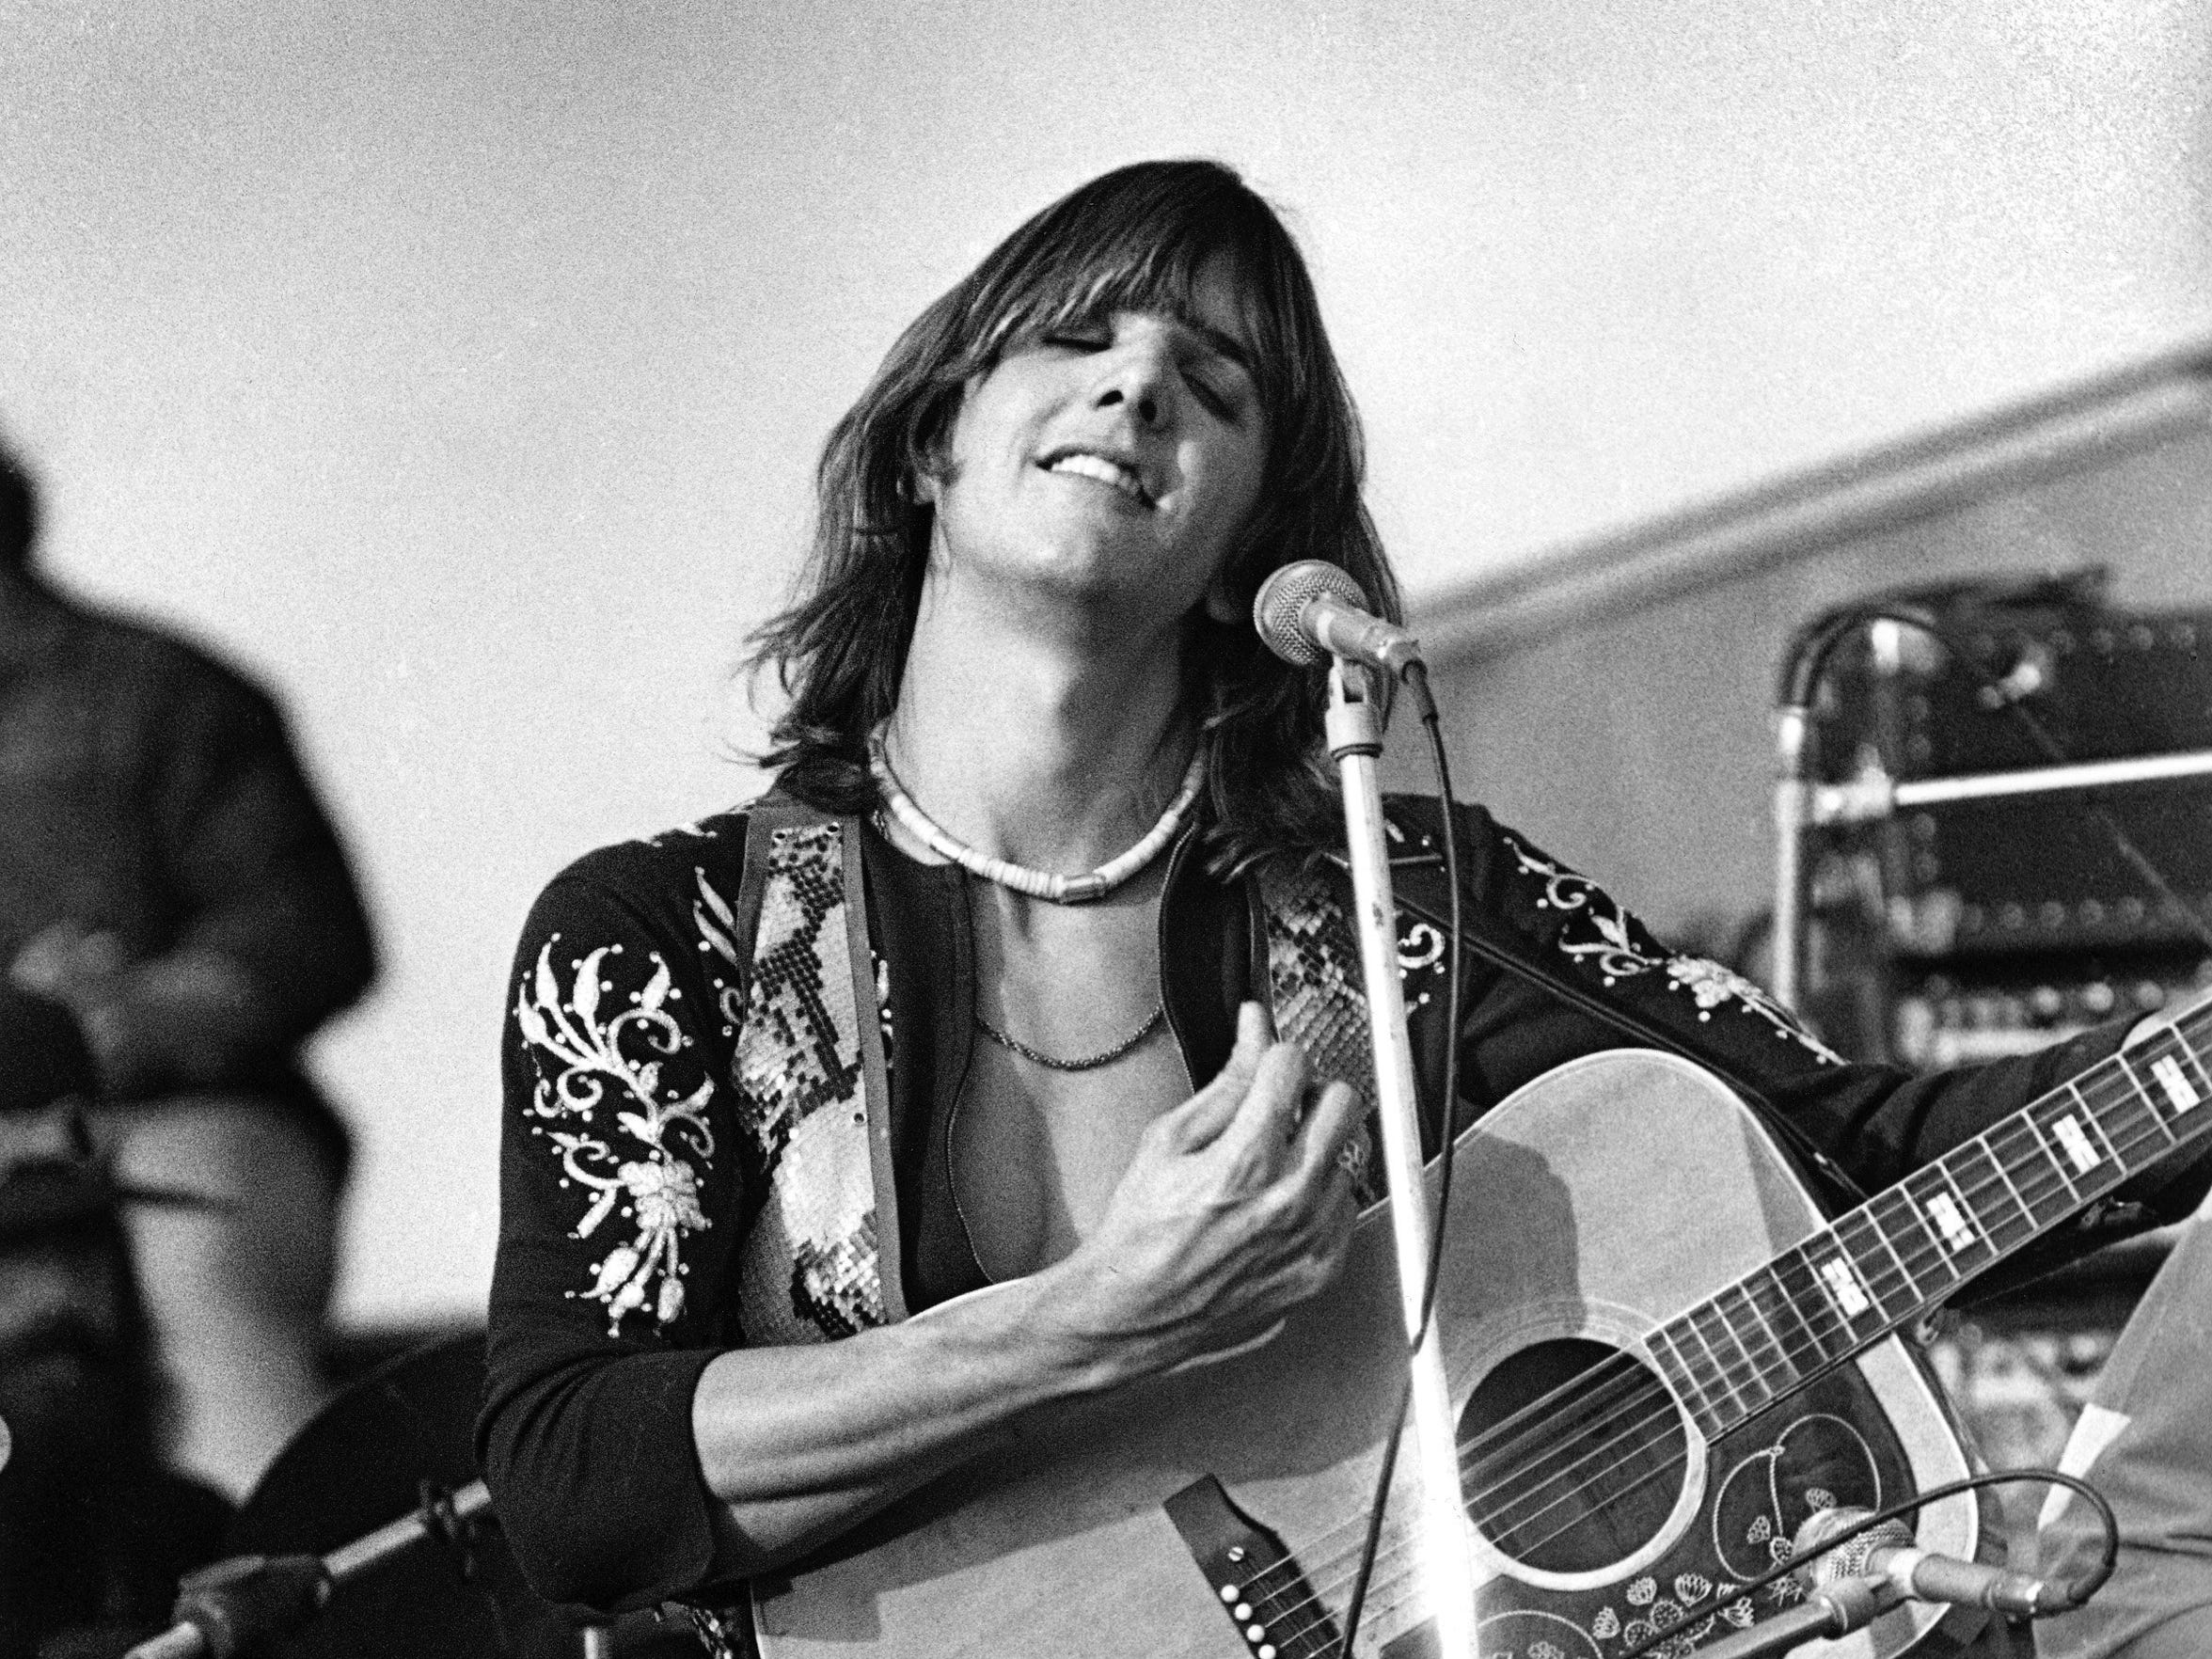 Gram Parsons performs onstage at The Altamont Speedway on Dec. 6, 1969, in Livermore, Calif.